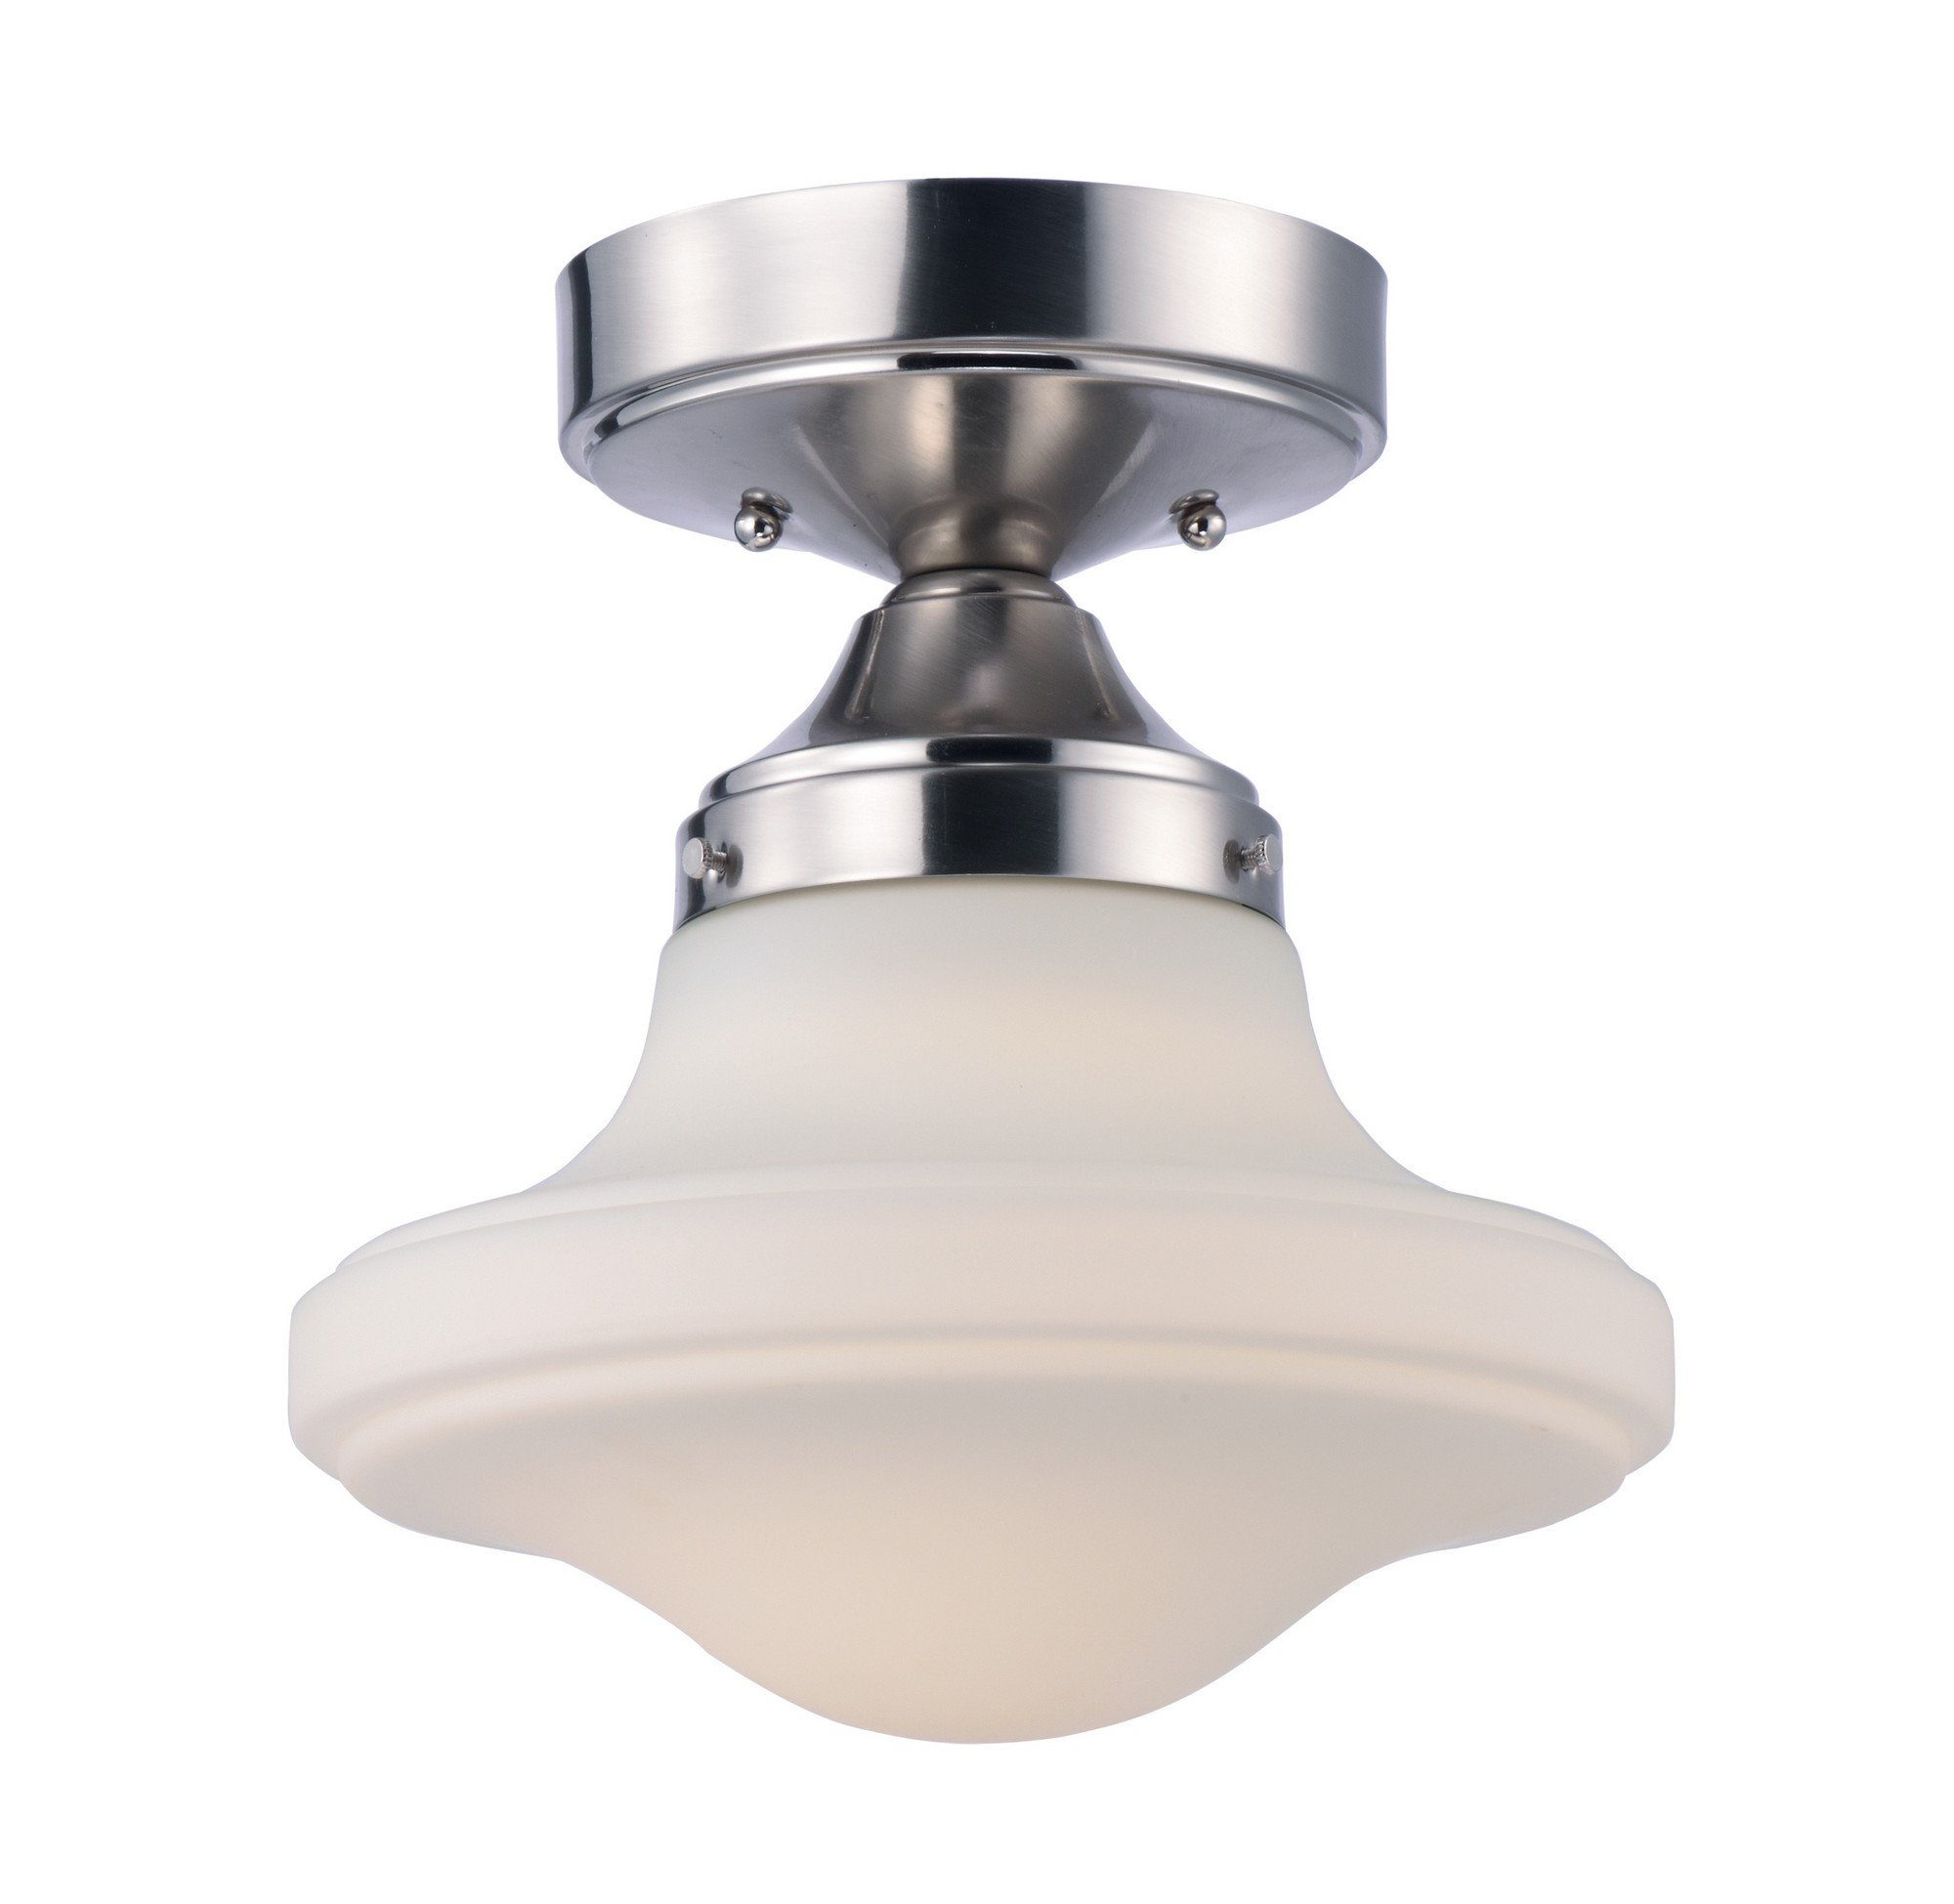 Maxim 30240SWSN New School LED Flush Mount, Satin Nickel Finish, Satin White Glass, PCB LED Bulb , 0.288W Max., Damp Safety Rating, Shade Material, Rated Lumens